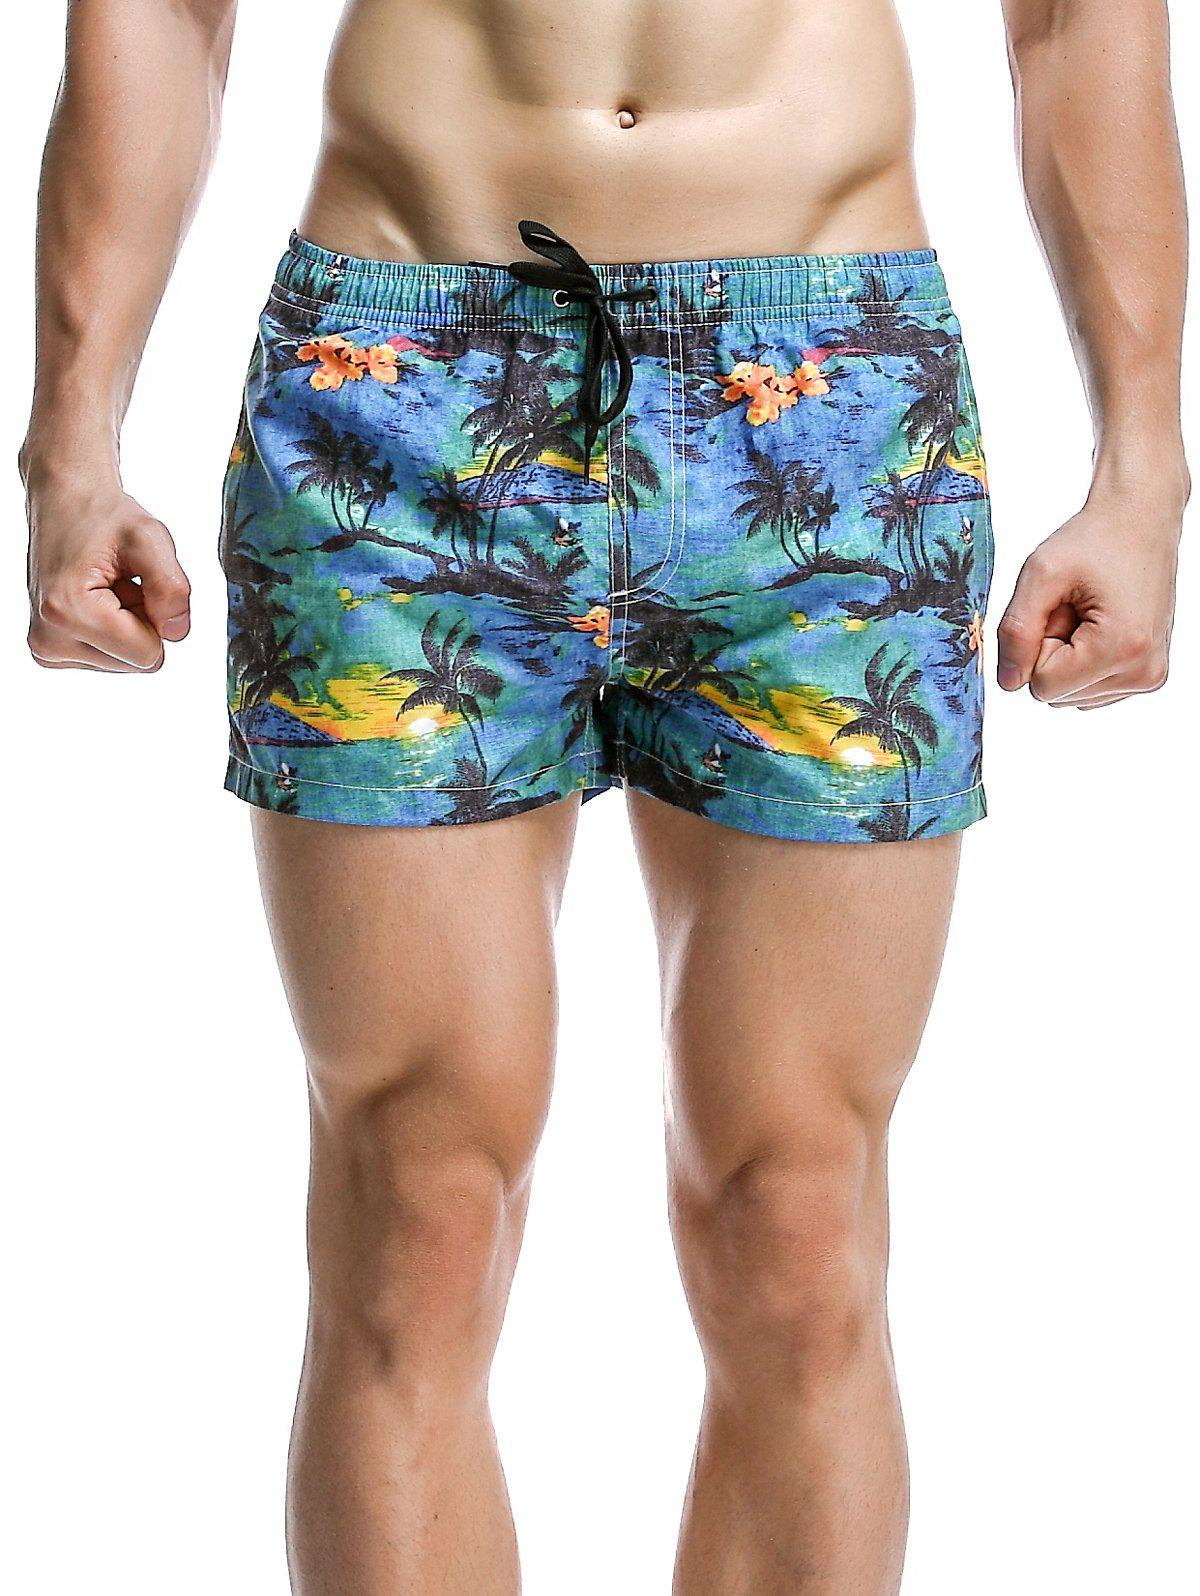 Men's Casual Coconut Tree Printed Boardshorts